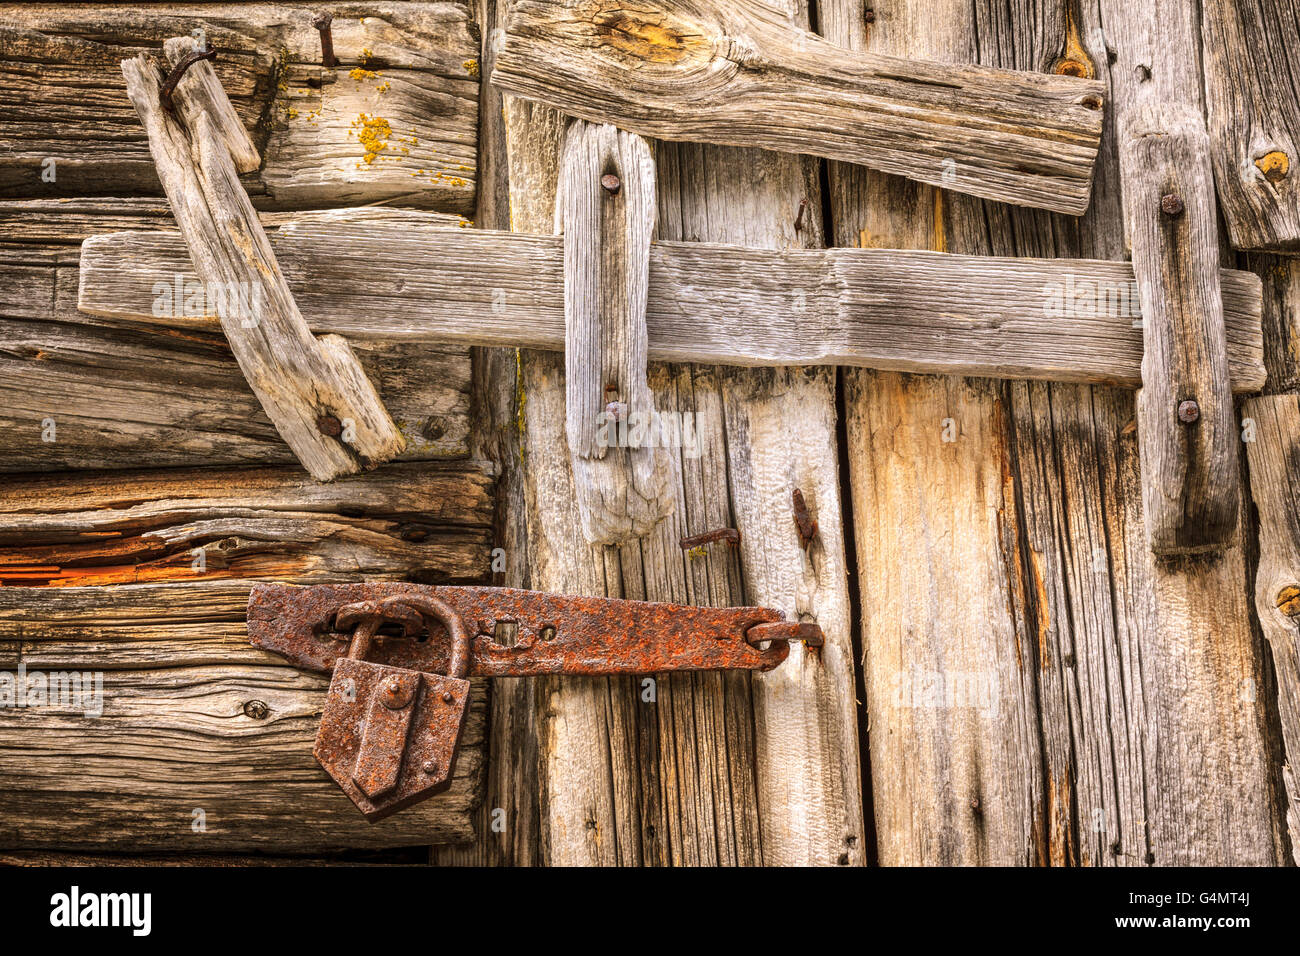 An old wooden log door is closed locked and latched with a log beam and a rusty pick lock in cast iron. & An old wooden log door is closed locked and latched with a log beam ...